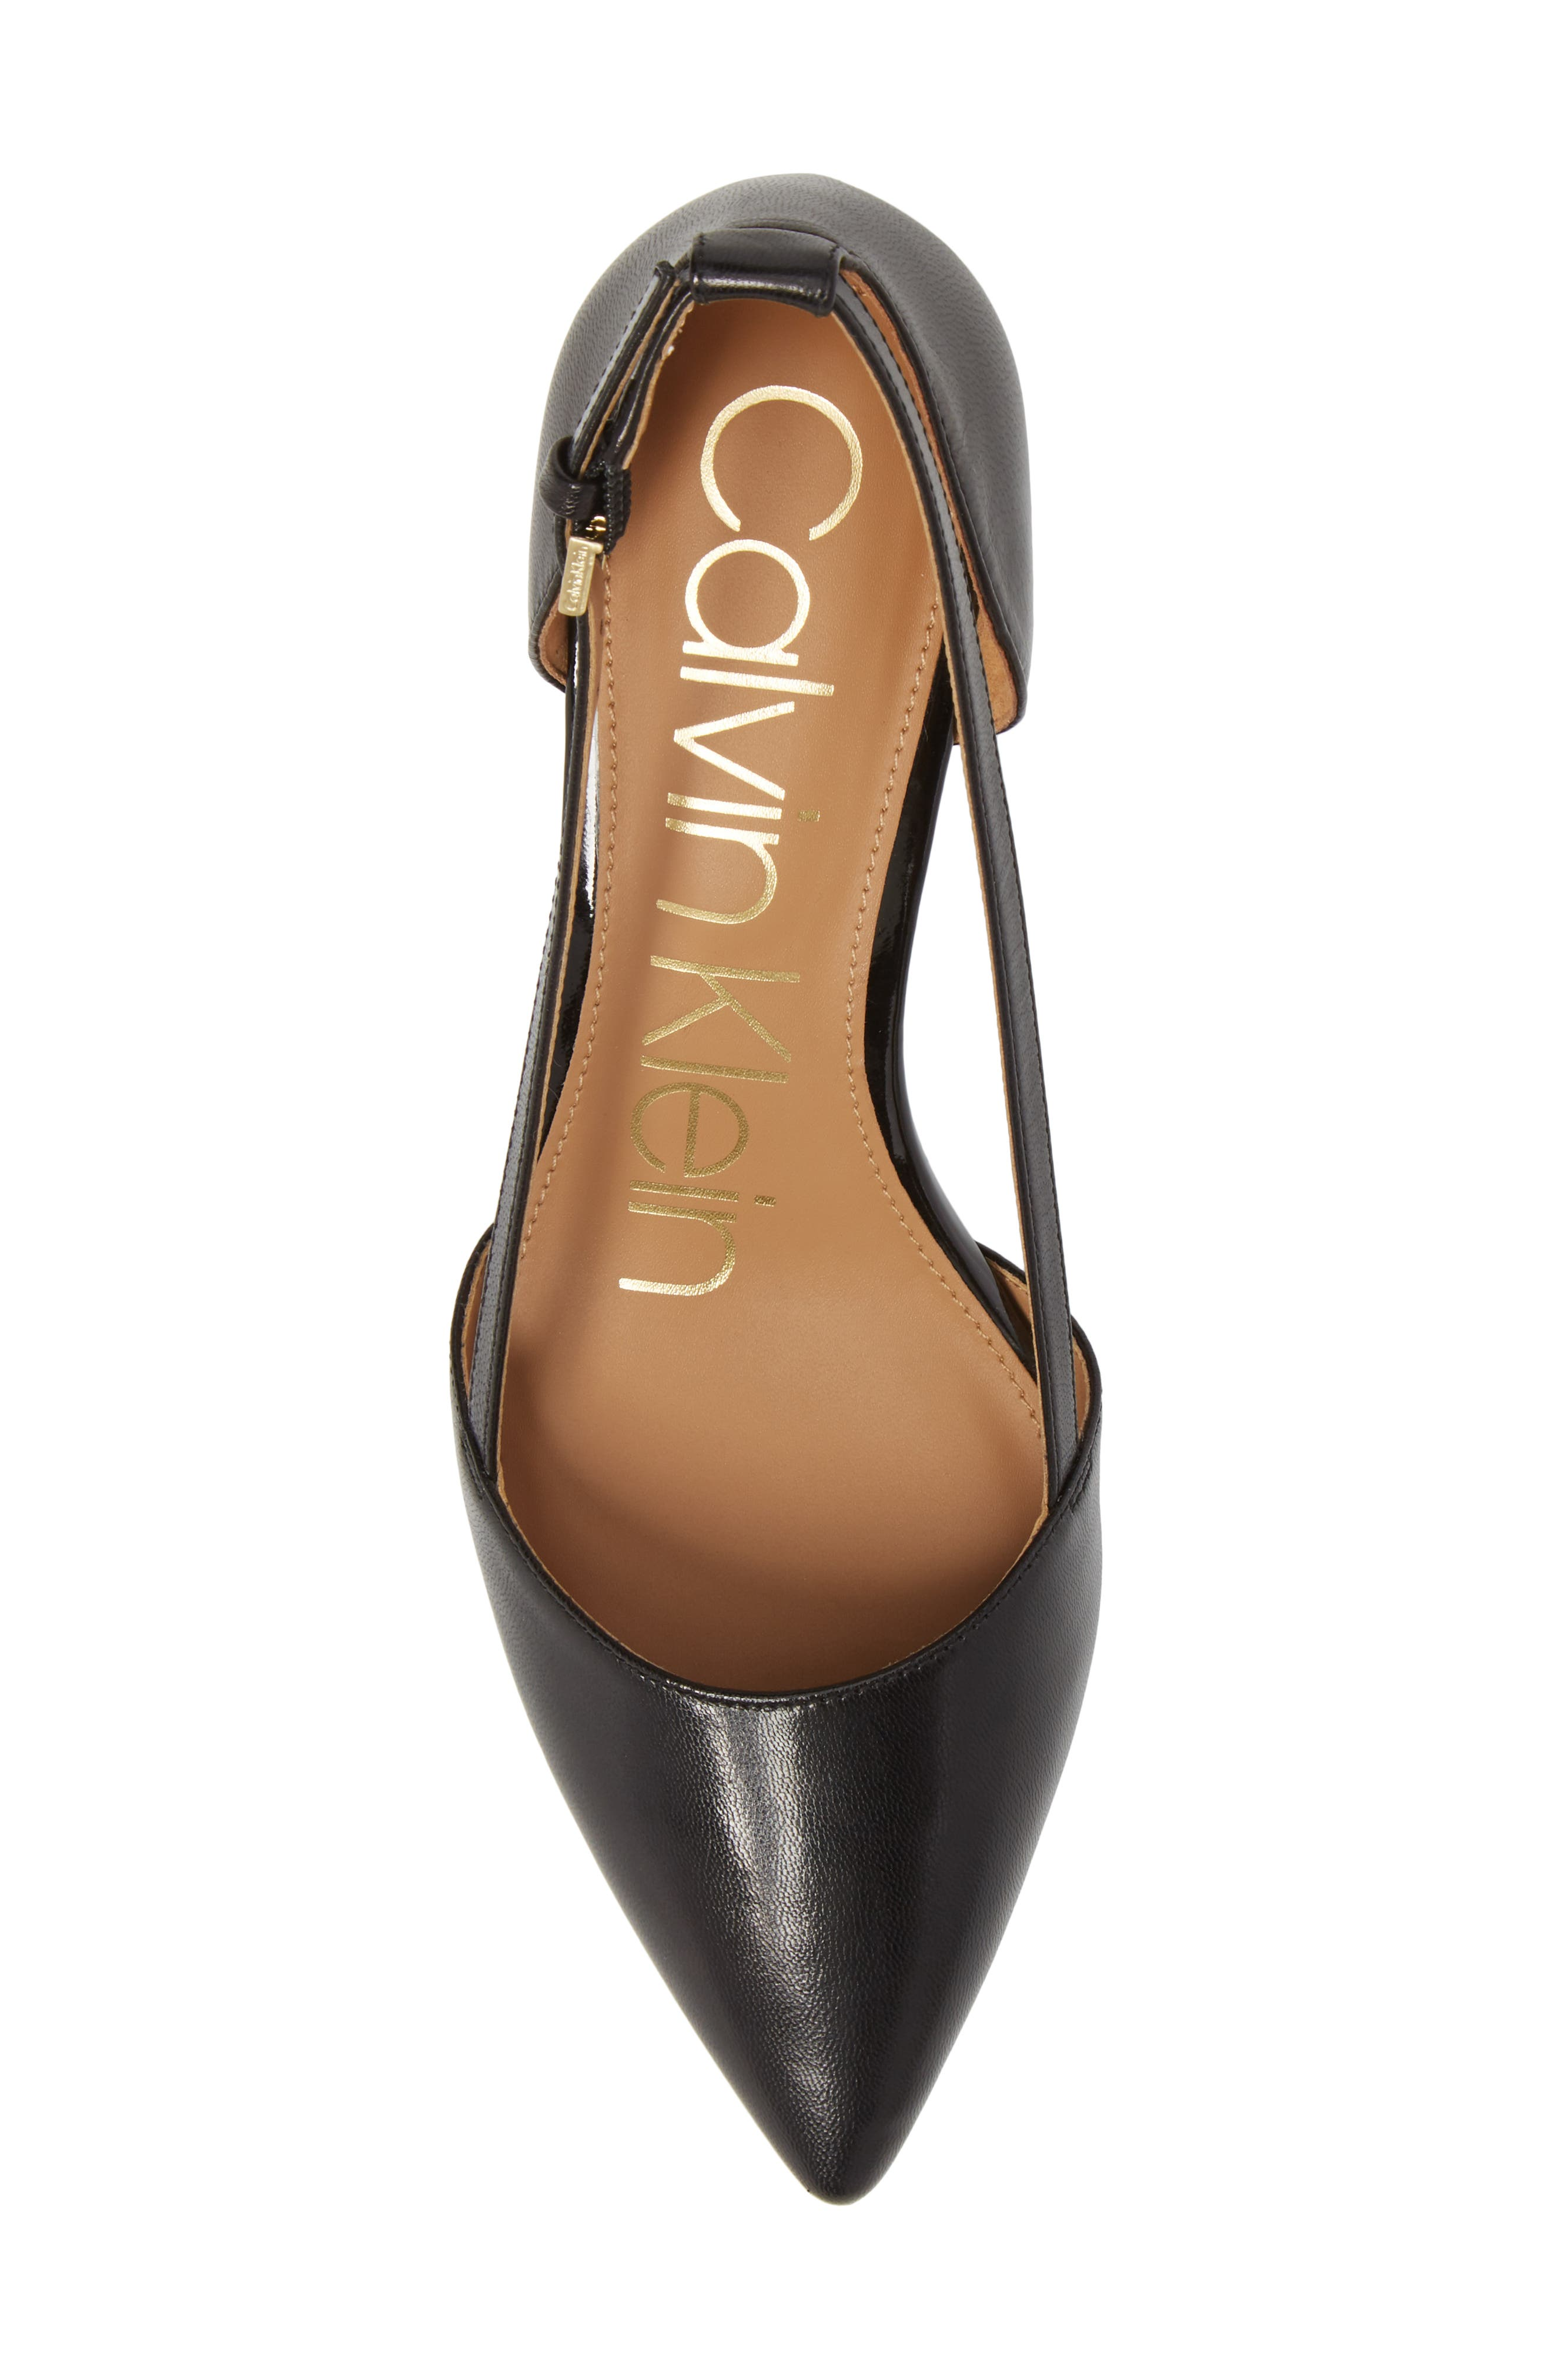 CALVIN KLEIN, Pashka Strappy Open Sided Pump, Alternate thumbnail 5, color, 001